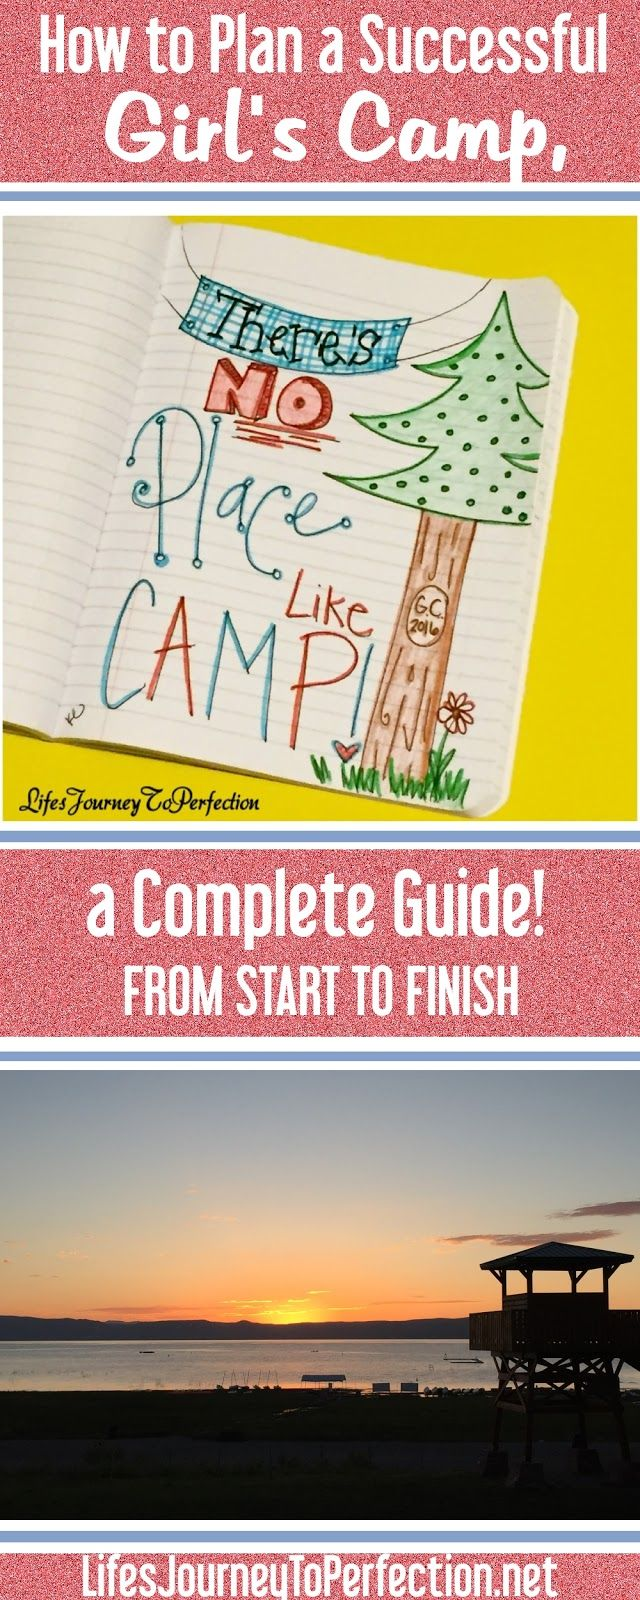 A blog with ideas to aid us on our life's journey to perfecting ourselves and our families. Crafts, Printable Pages, LDS lesson helps and more.